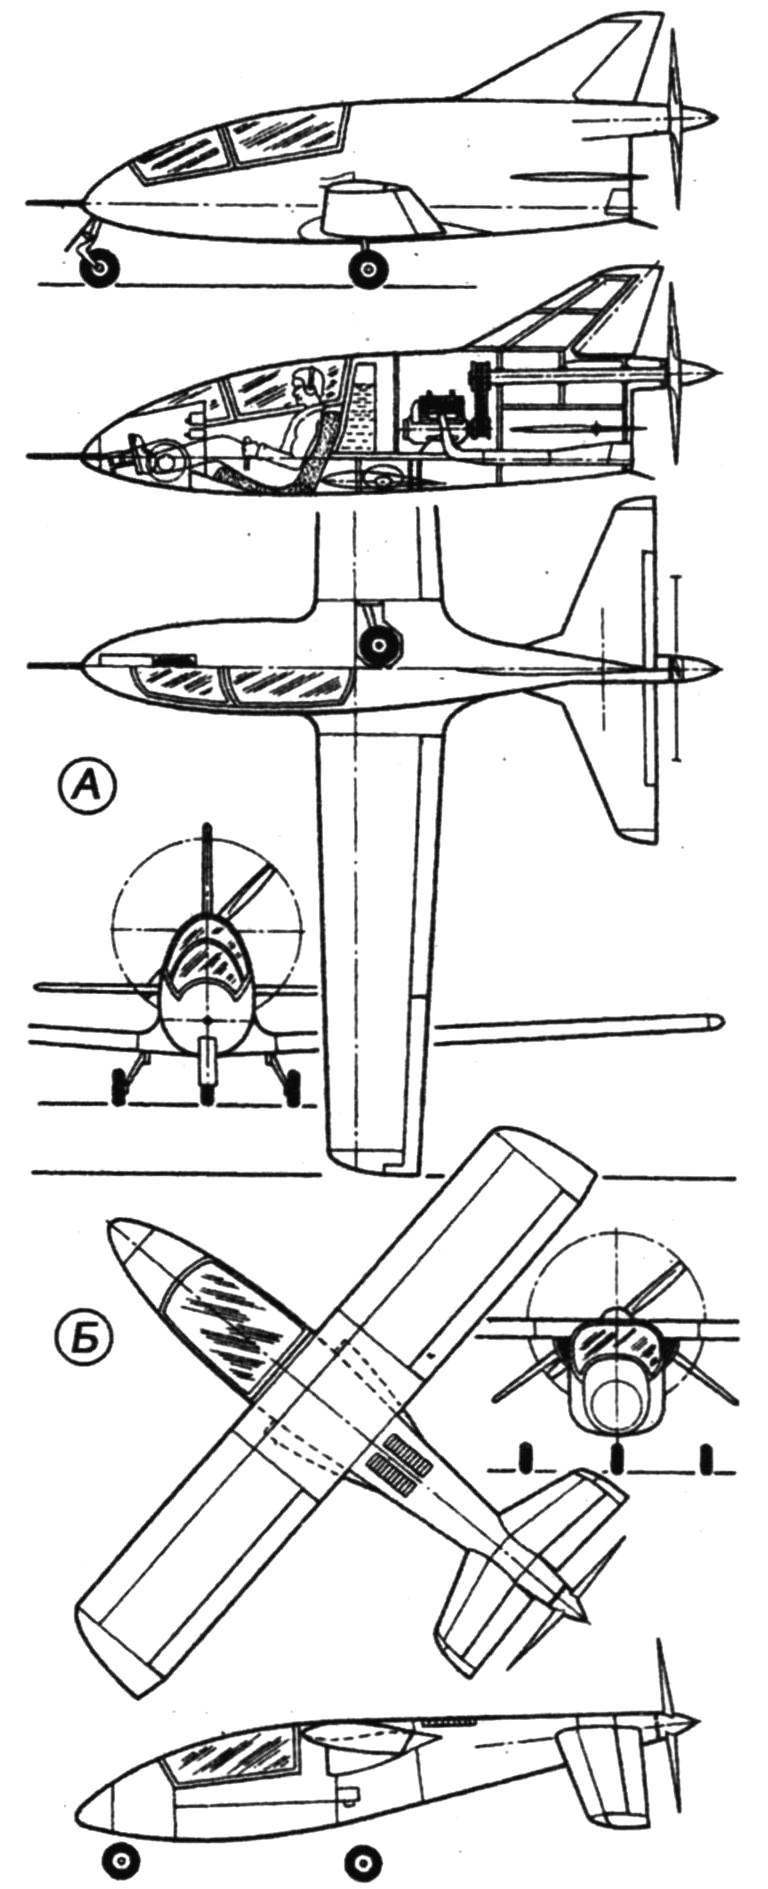 High-speed monoplanes with pusher propeller